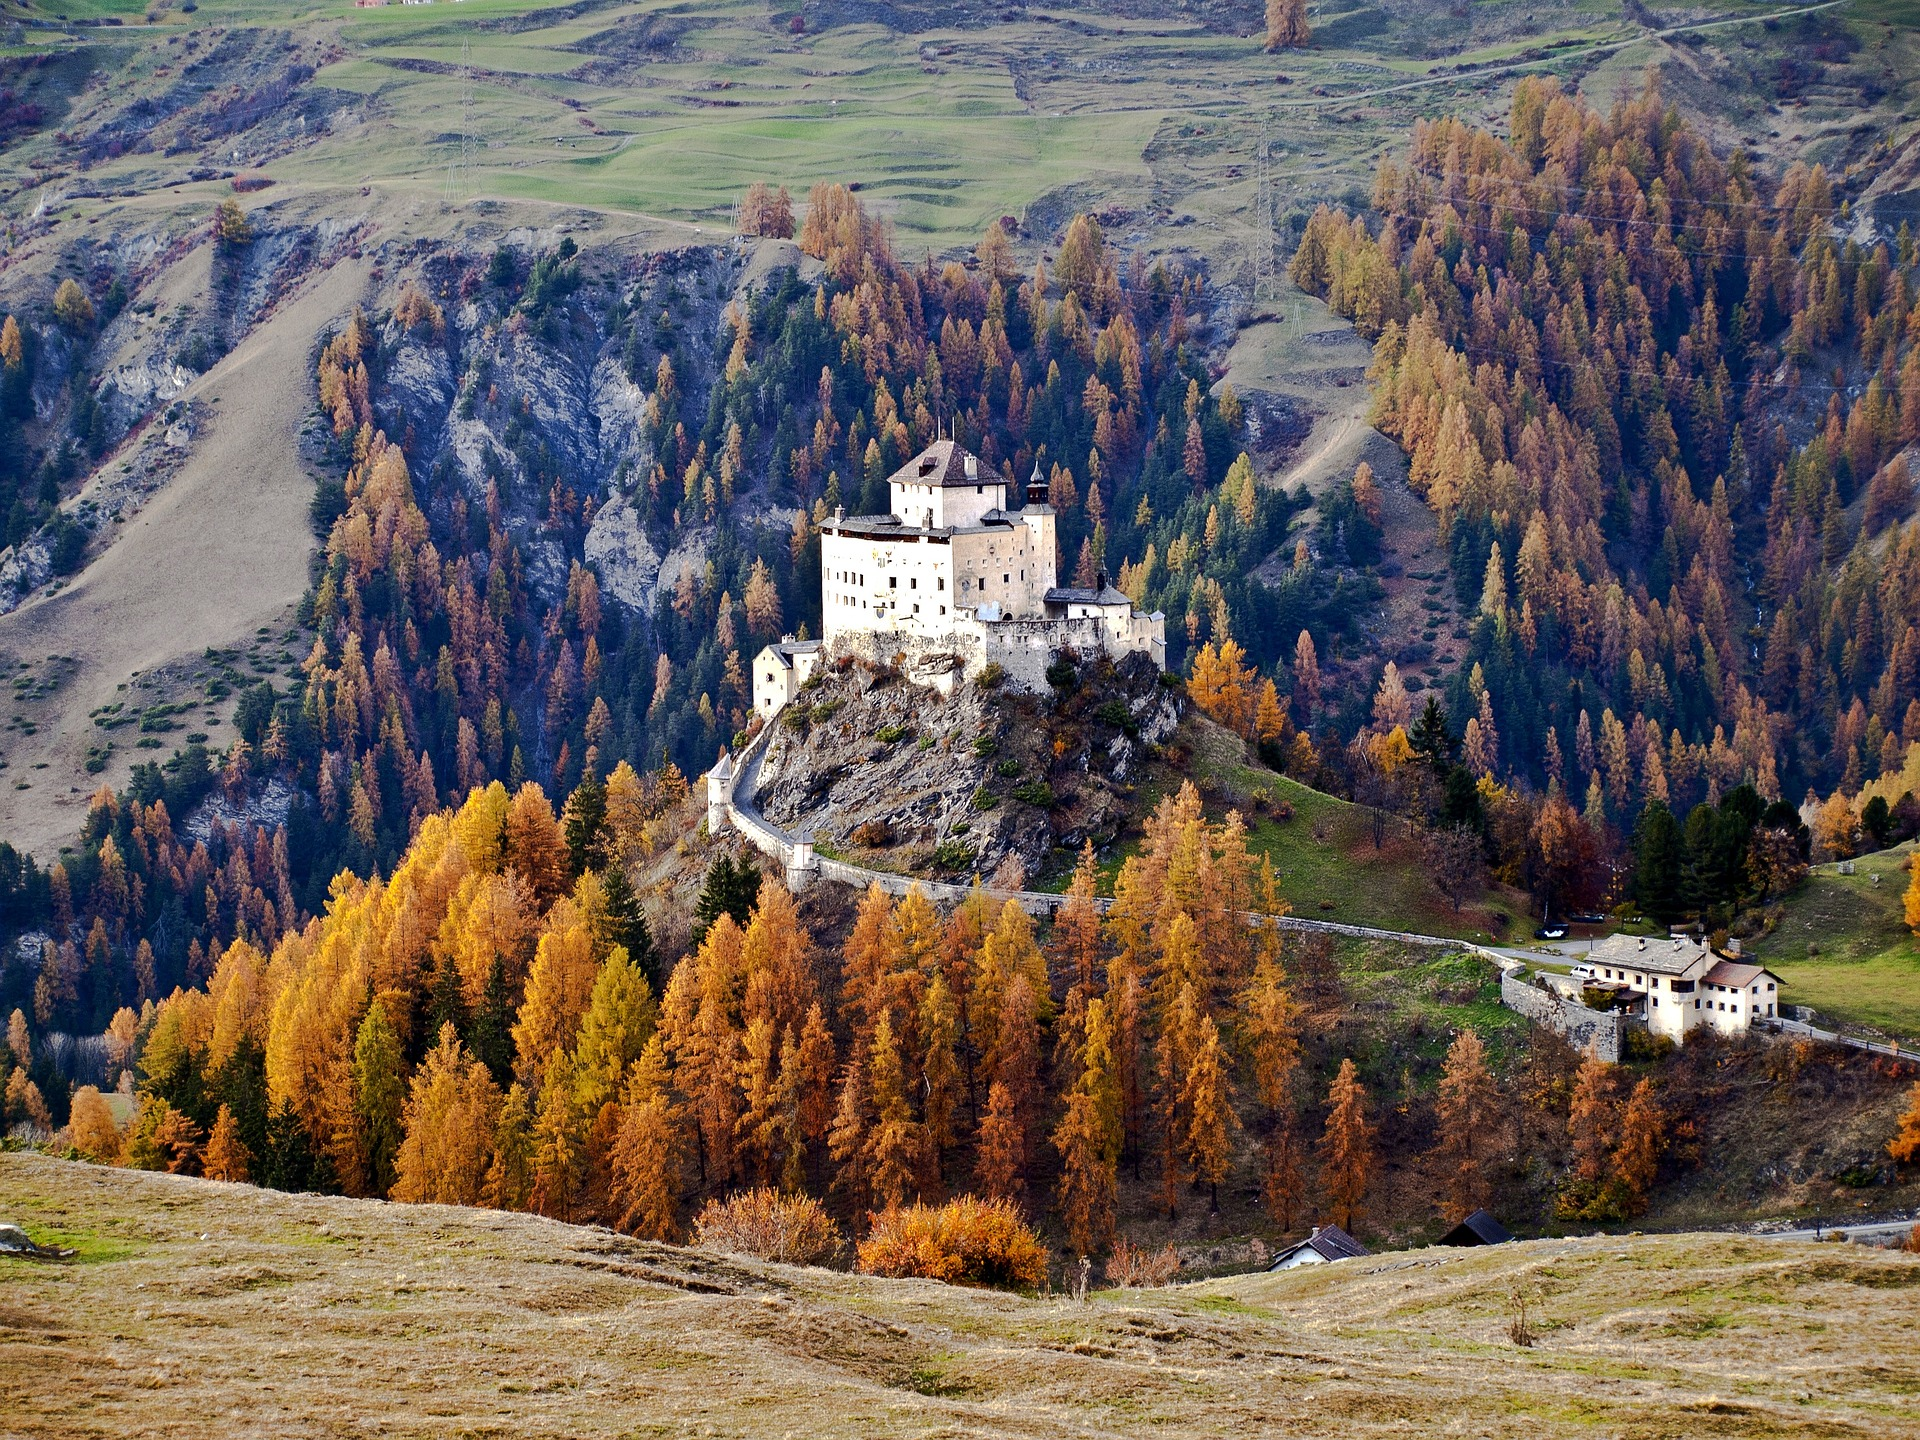 Tarasp Castle, Tarasp, Lower Engadine, Switzerland